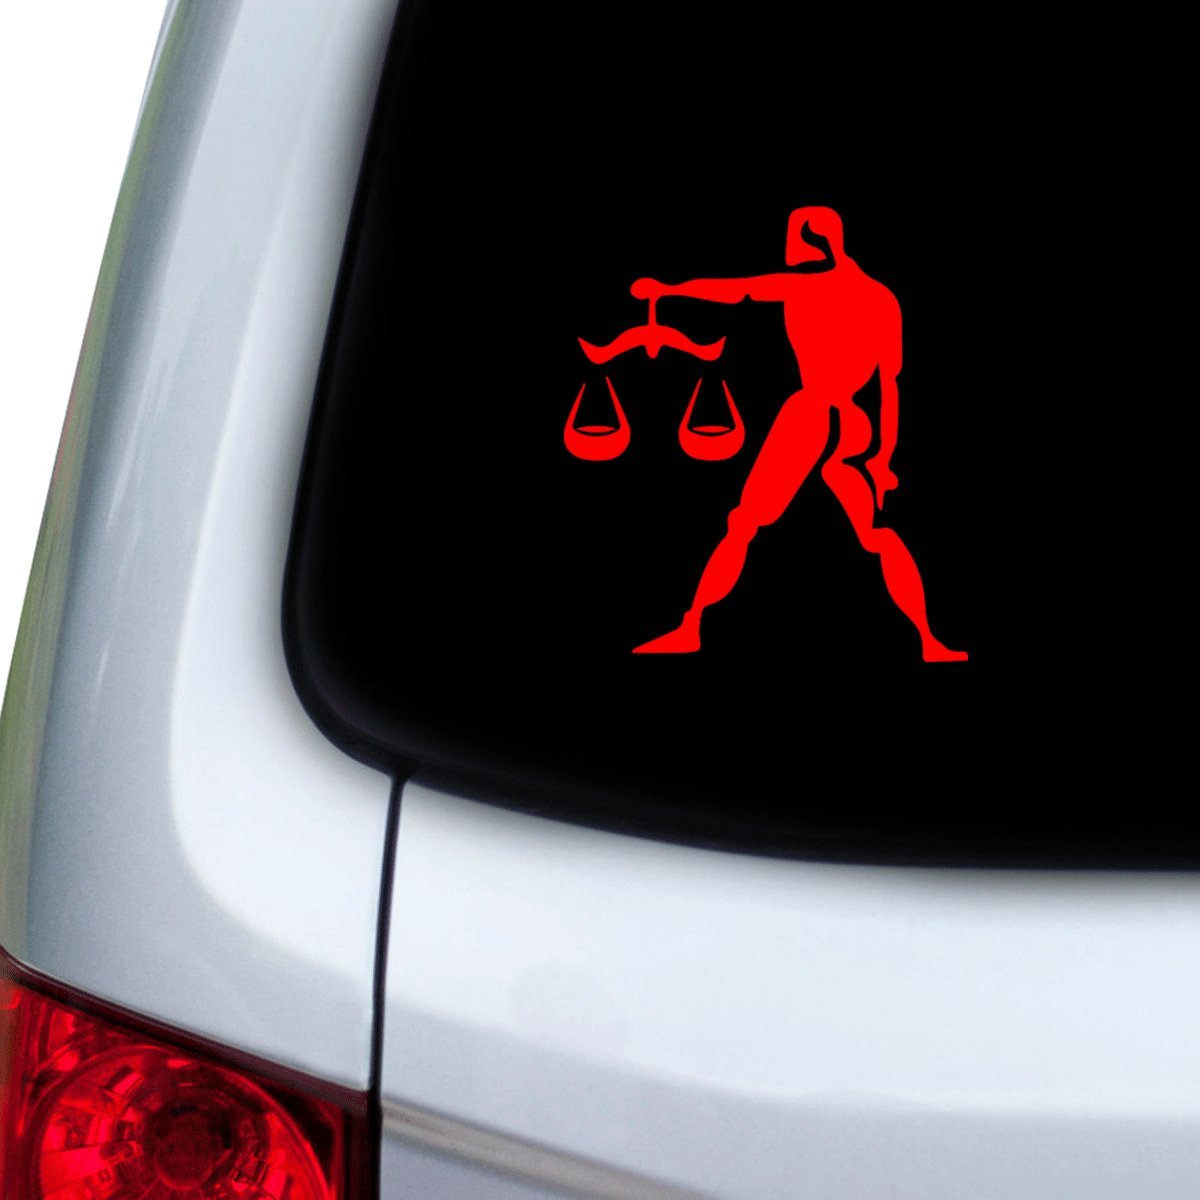 Hoods Red StickAny Car and Auto Decal Series Libra Picture Sticker for Windows Doors